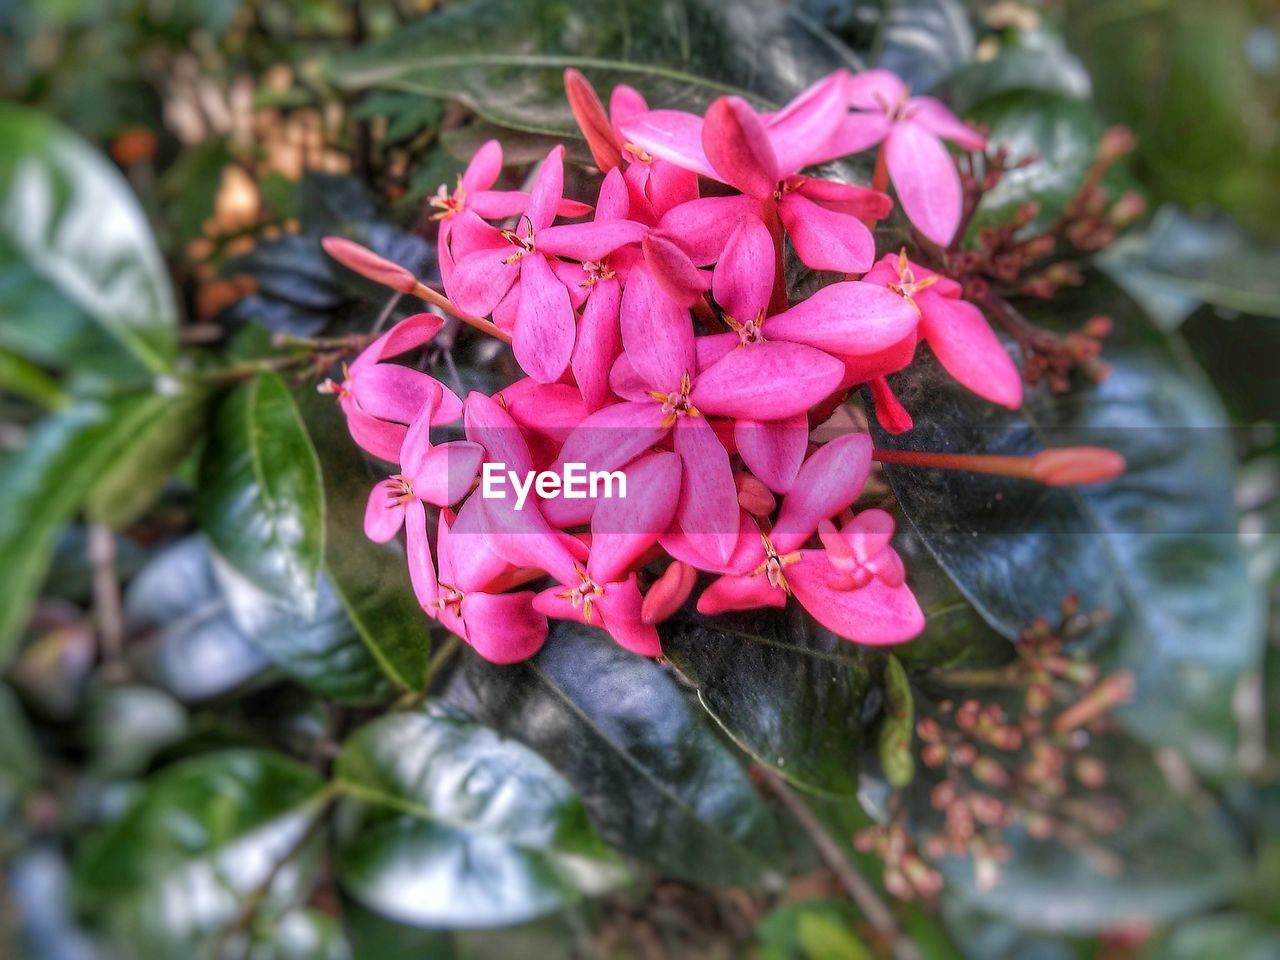 flower, petal, beauty in nature, nature, fragility, freshness, flower head, growth, blooming, outdoors, day, pink color, no people, plant, close-up